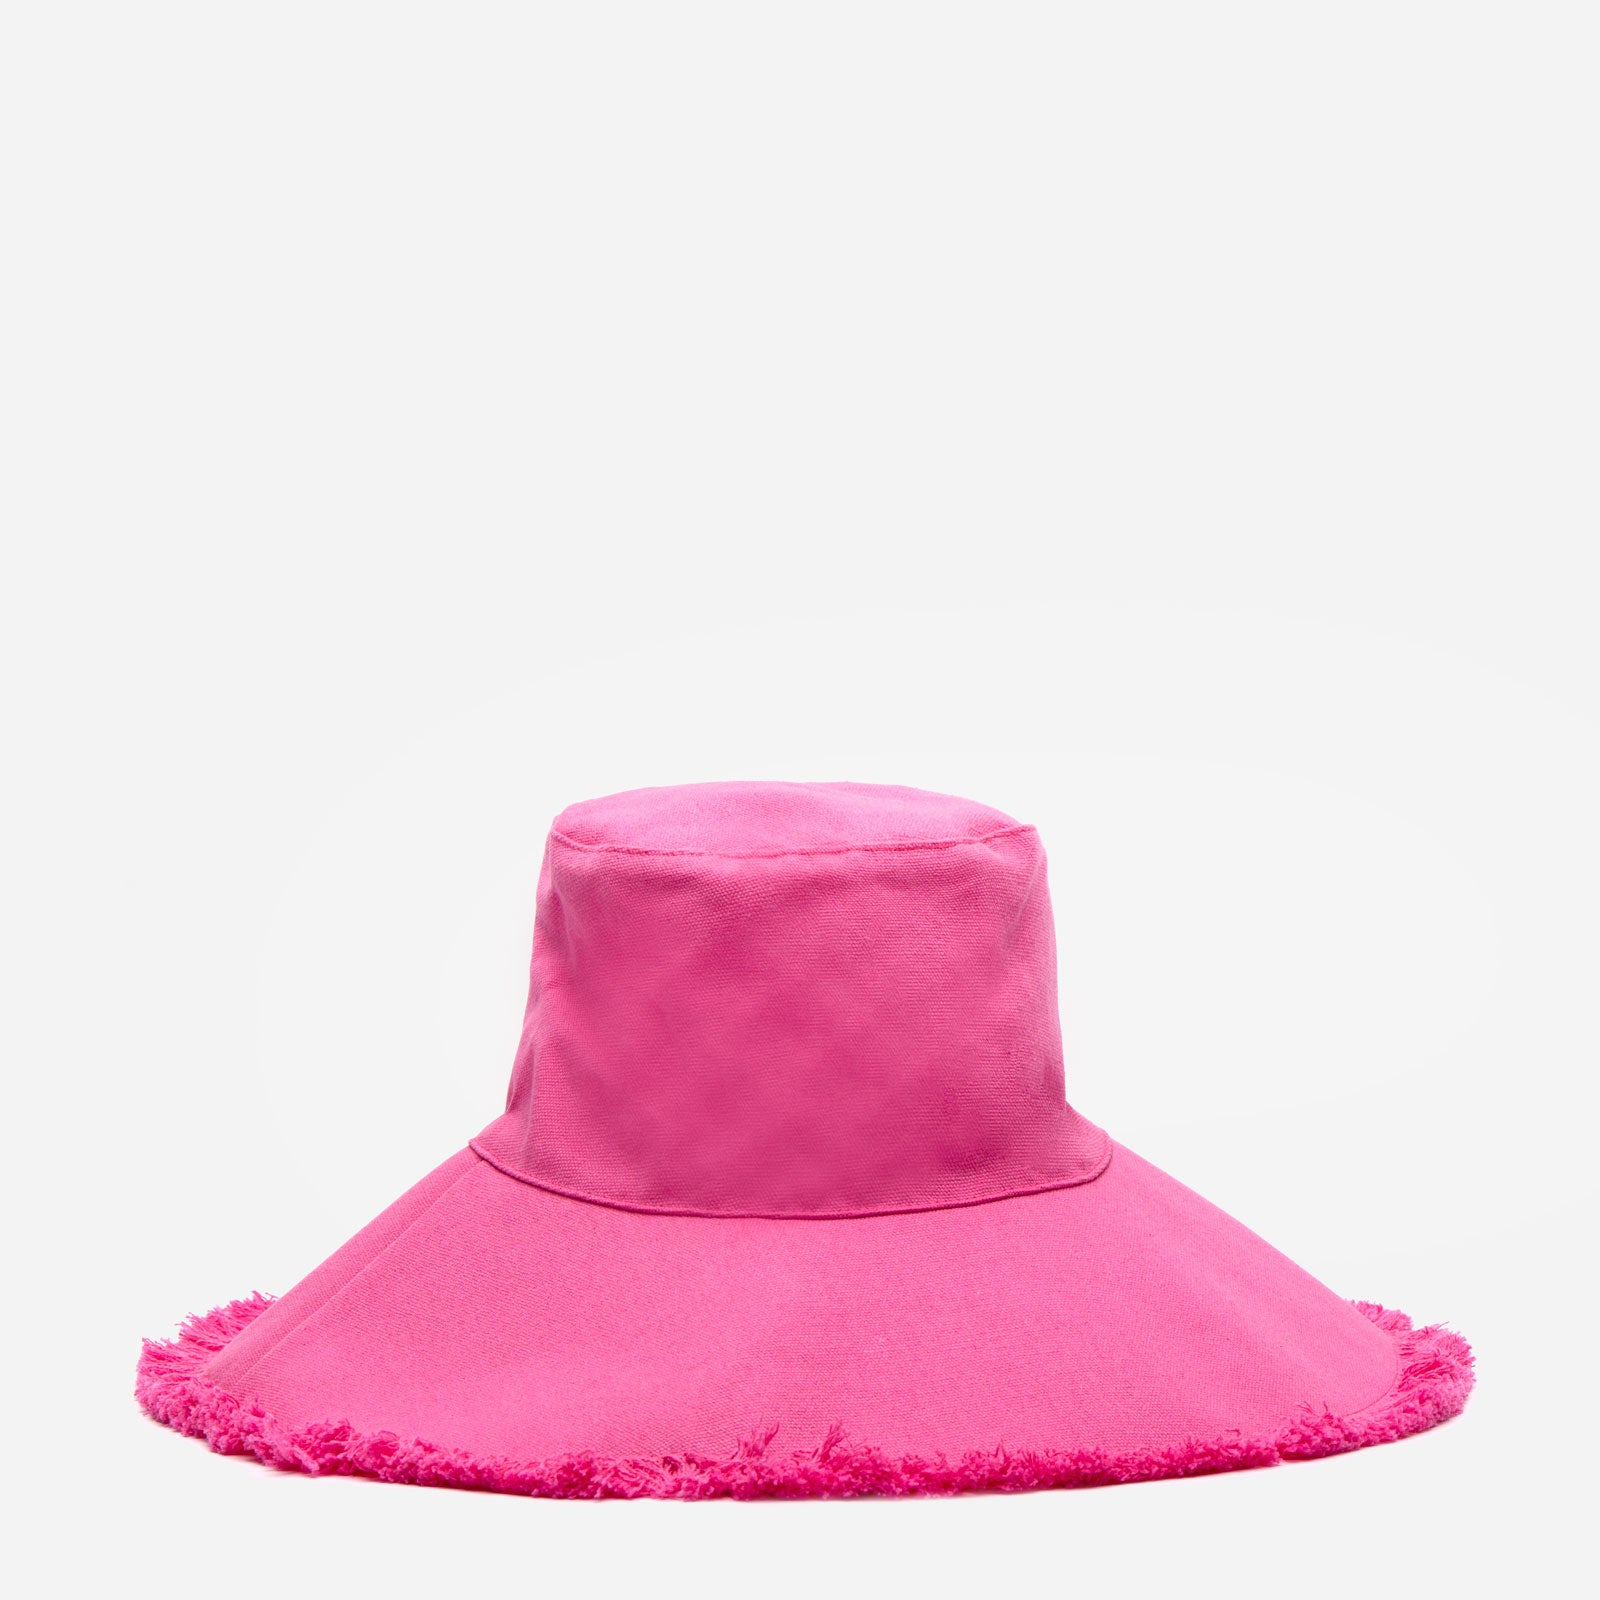 Canvas Fringe Hat Pink - Frances Valentine